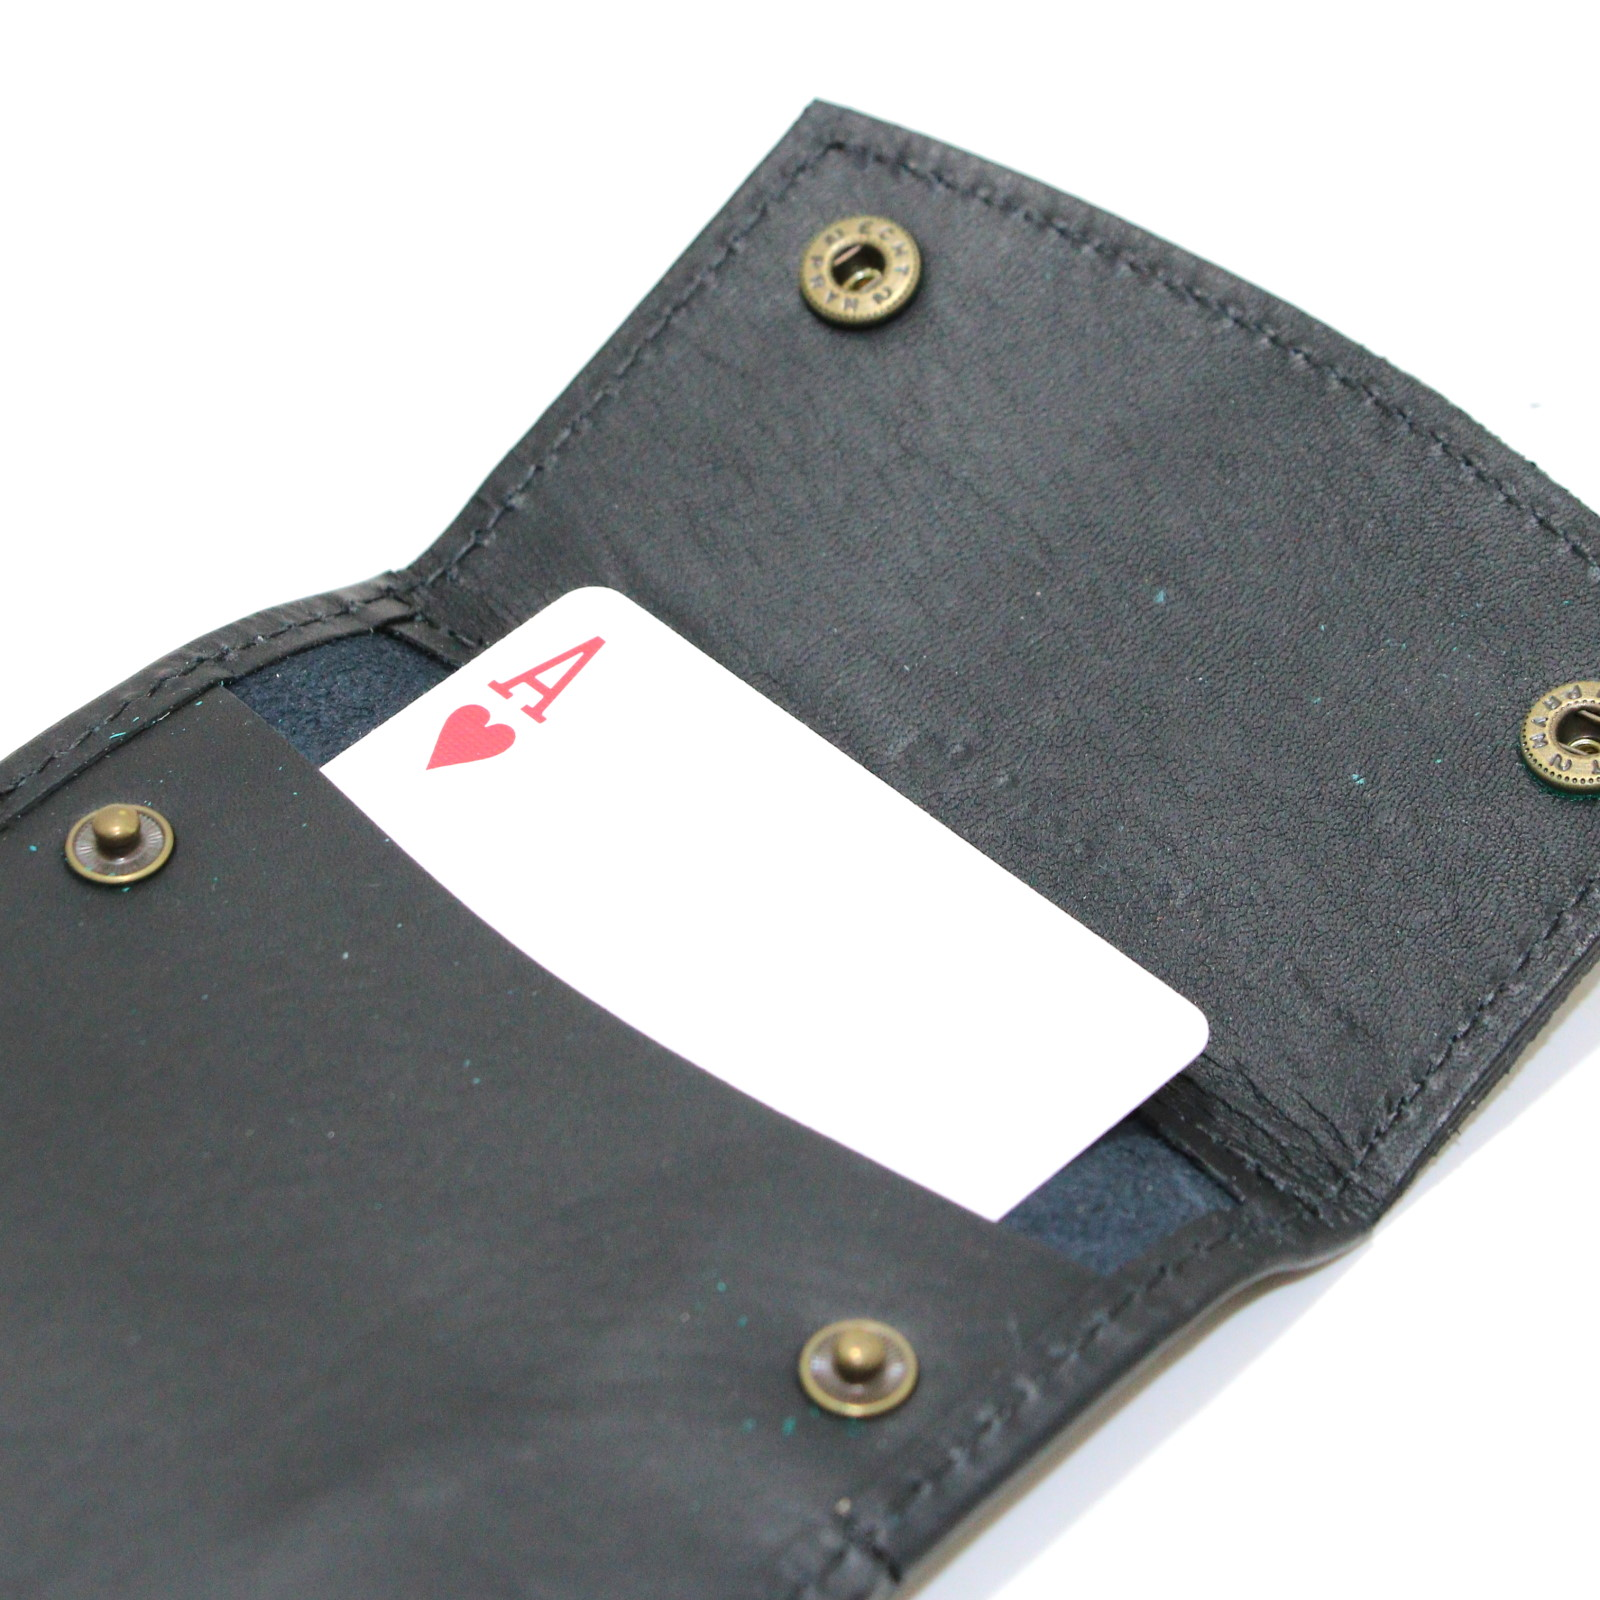 Signed Card To Hip Wallet (No Palm) by El Ducos Magic